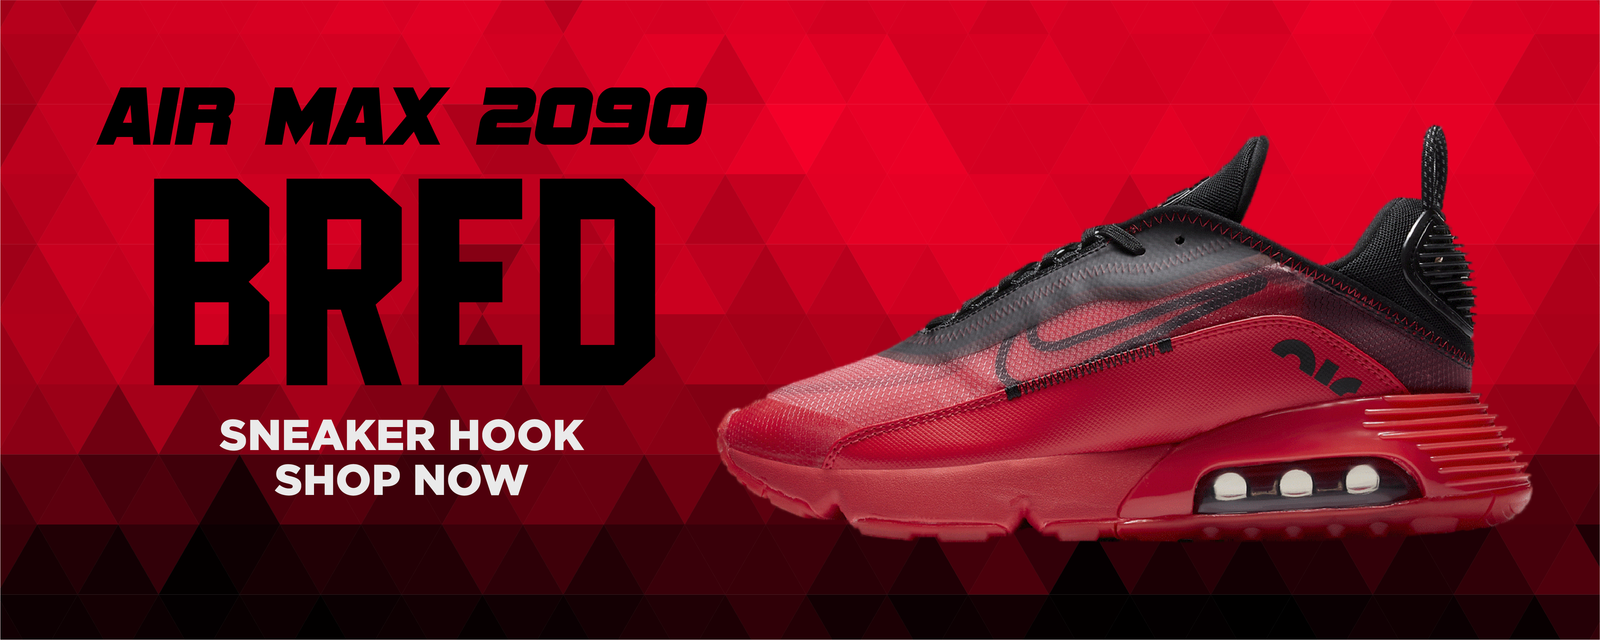 Air Max 2090 Bred Clothing to match Sneakers | Clothing to match Nike Air Max 2090 Bred Shoes